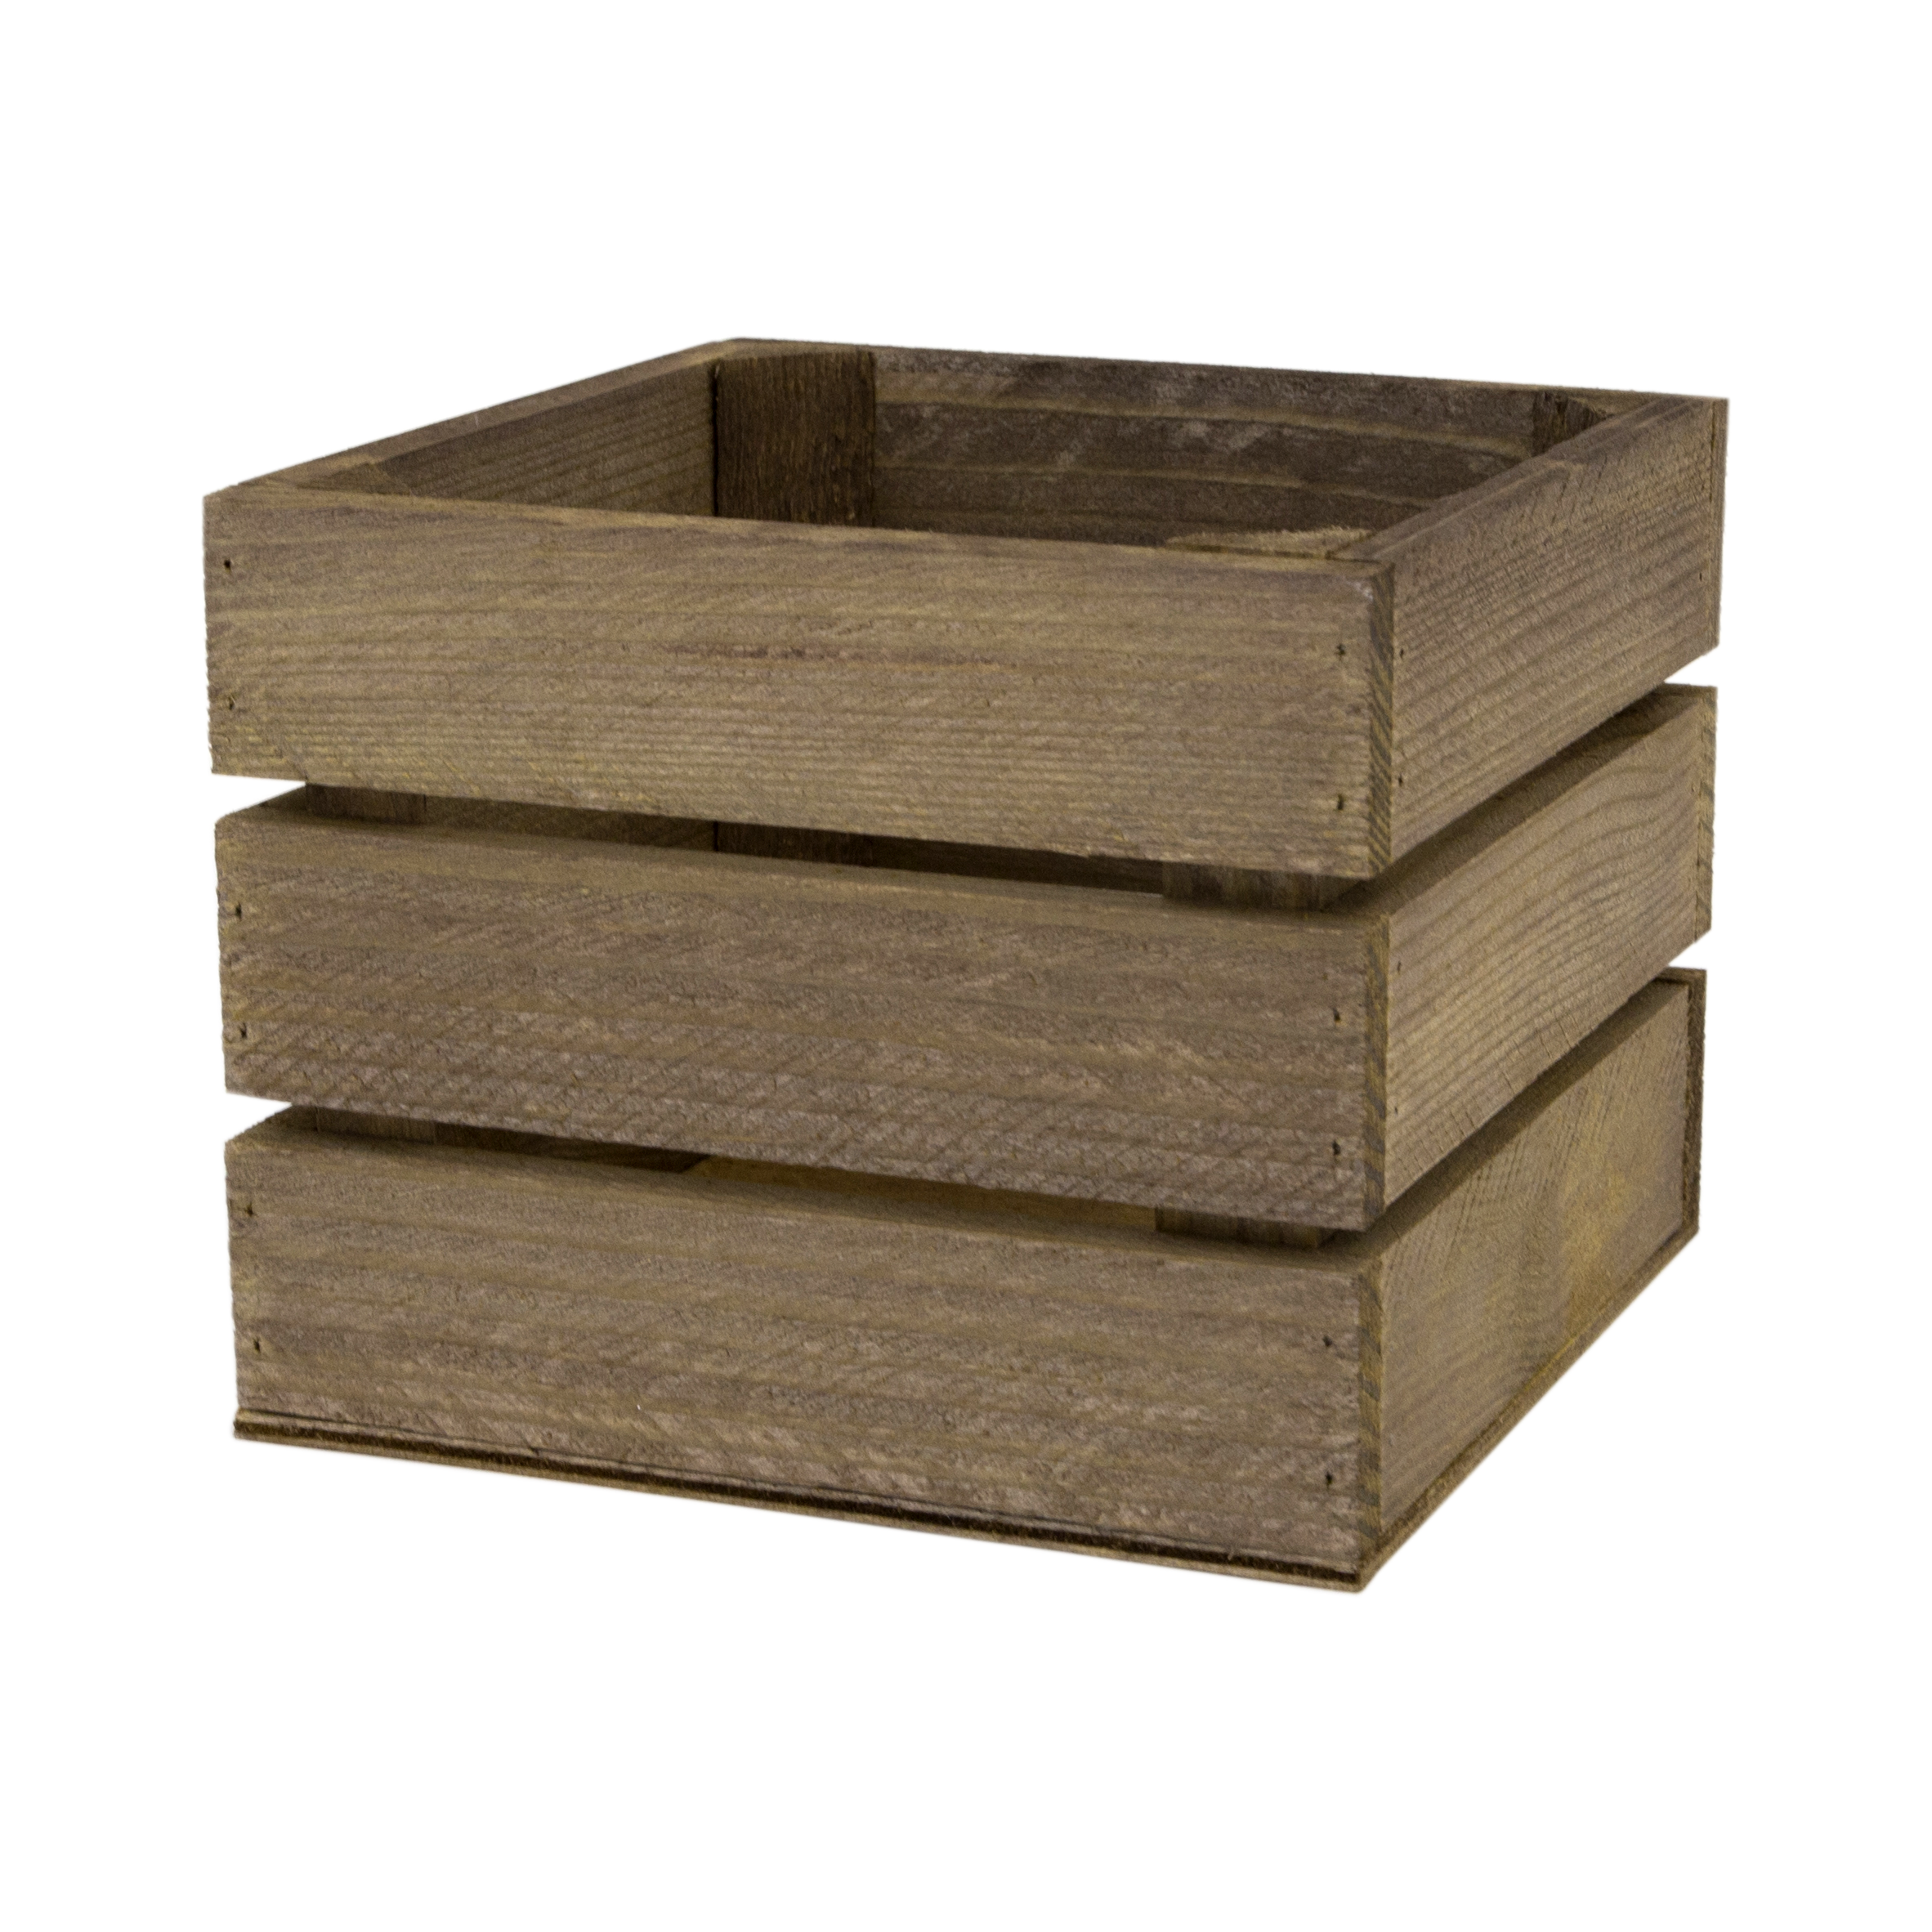 Small Square Wooden Crate Woodenboxuk